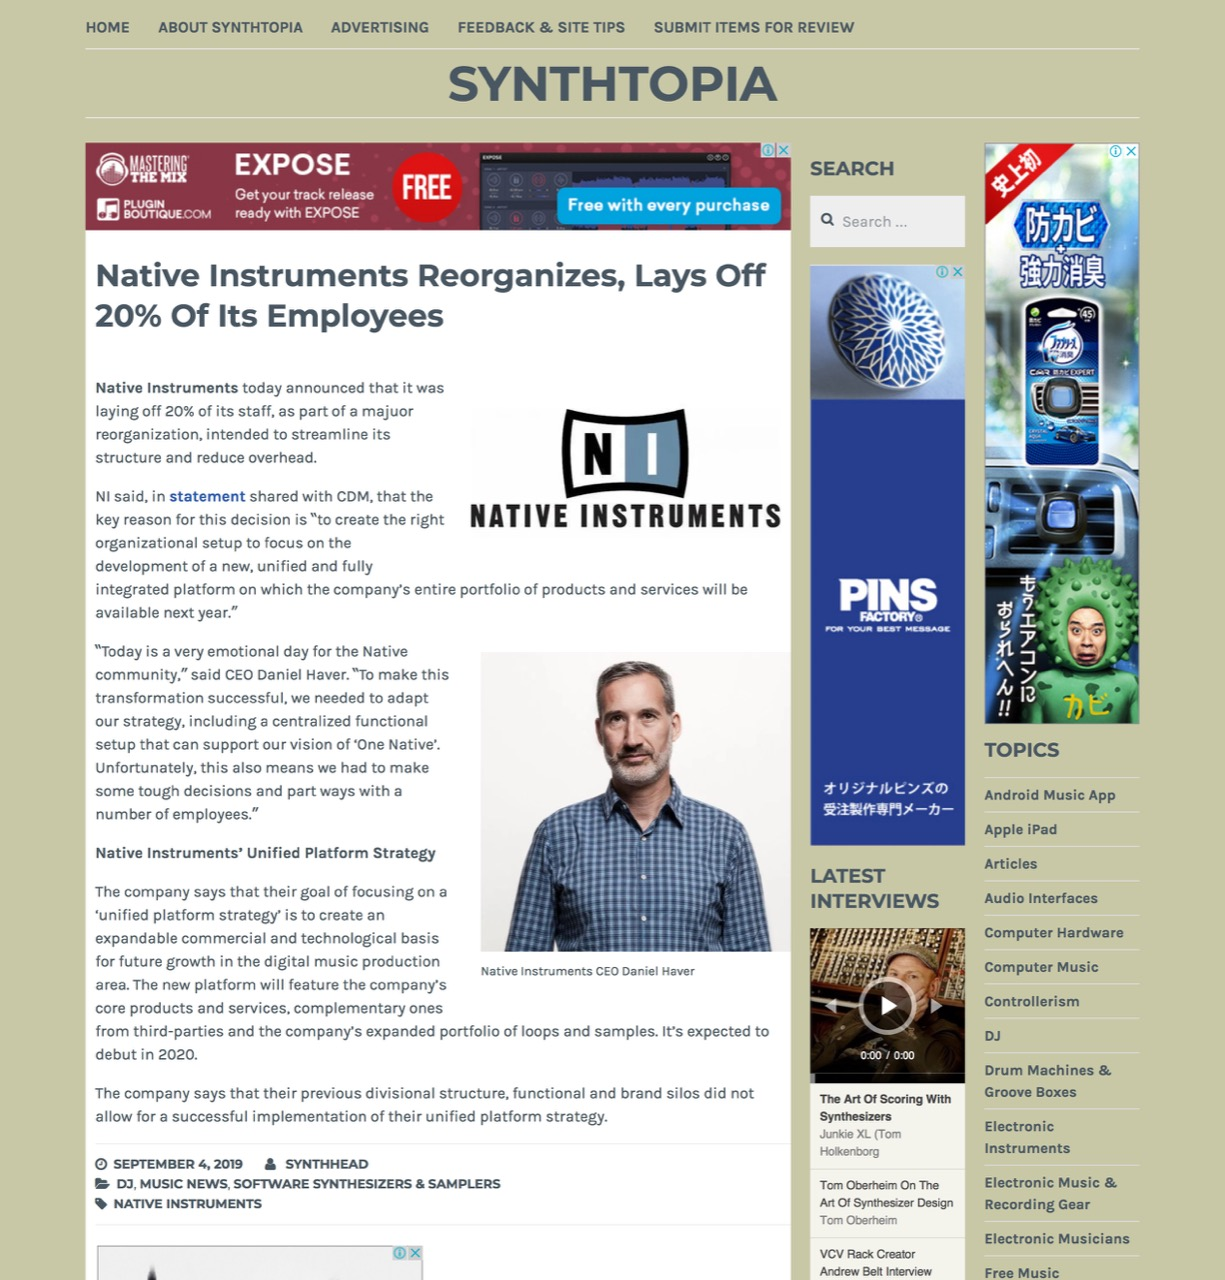 Native Instruments Reorganizes, Lays Off 20% Of Its Employees – Synthtopia